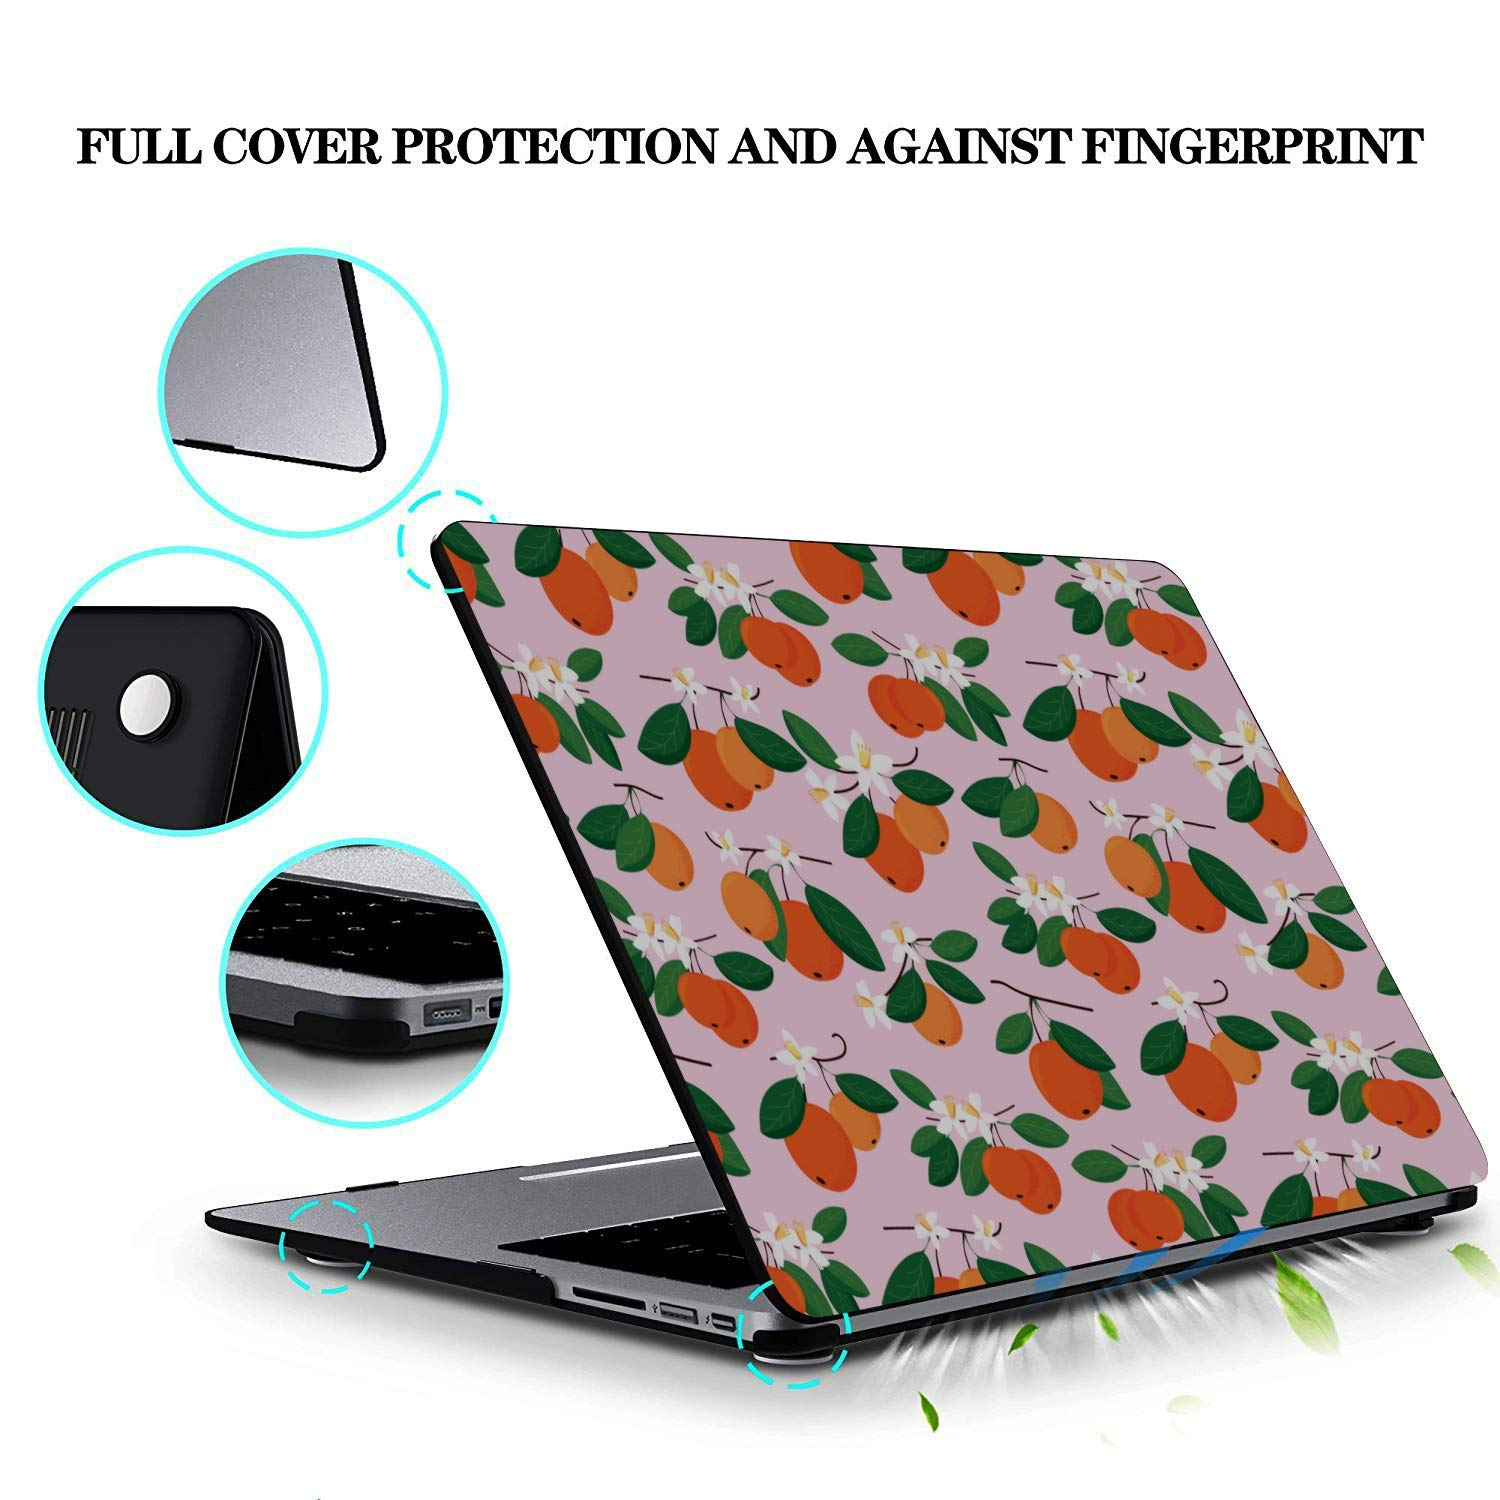 MacBook Air 13 Accessories Summer Retro Sweet Sour Orange Tree Plastic Hard Shell Compatible Mac Air 11 Pro 13 15 MacBook Pro Screen Protector Protection for MacBook 2016-2019 Version